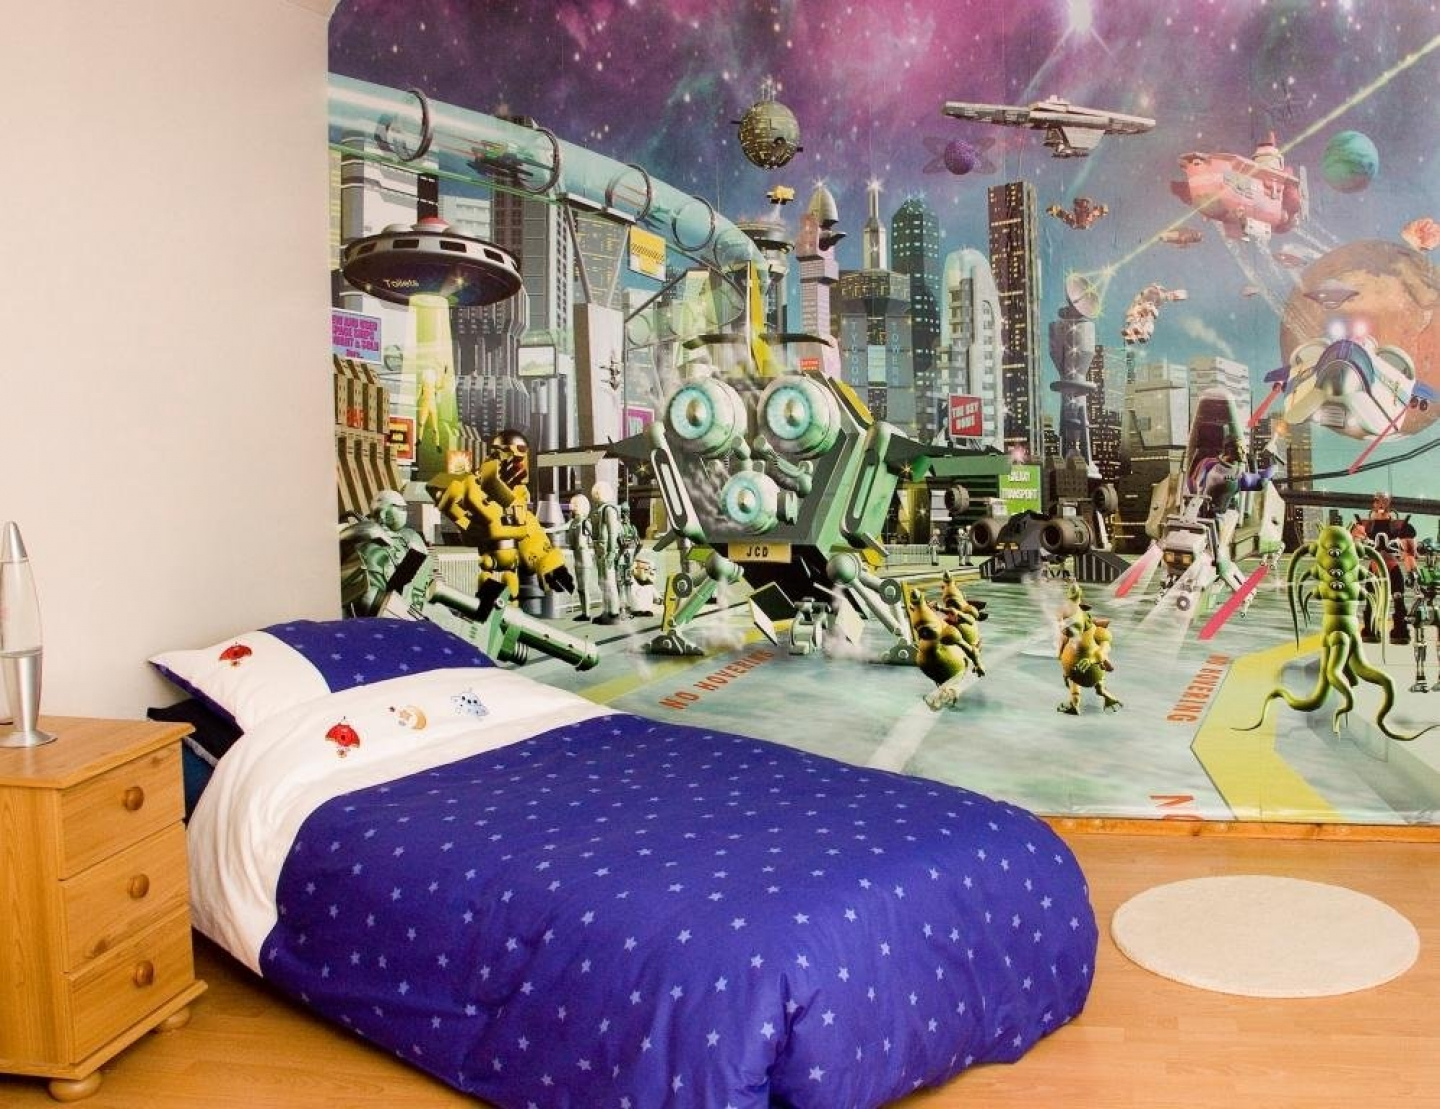 Kids Room Wallpaper Ideas: Cartoon Inspiration By Homecaprice.com Part 47